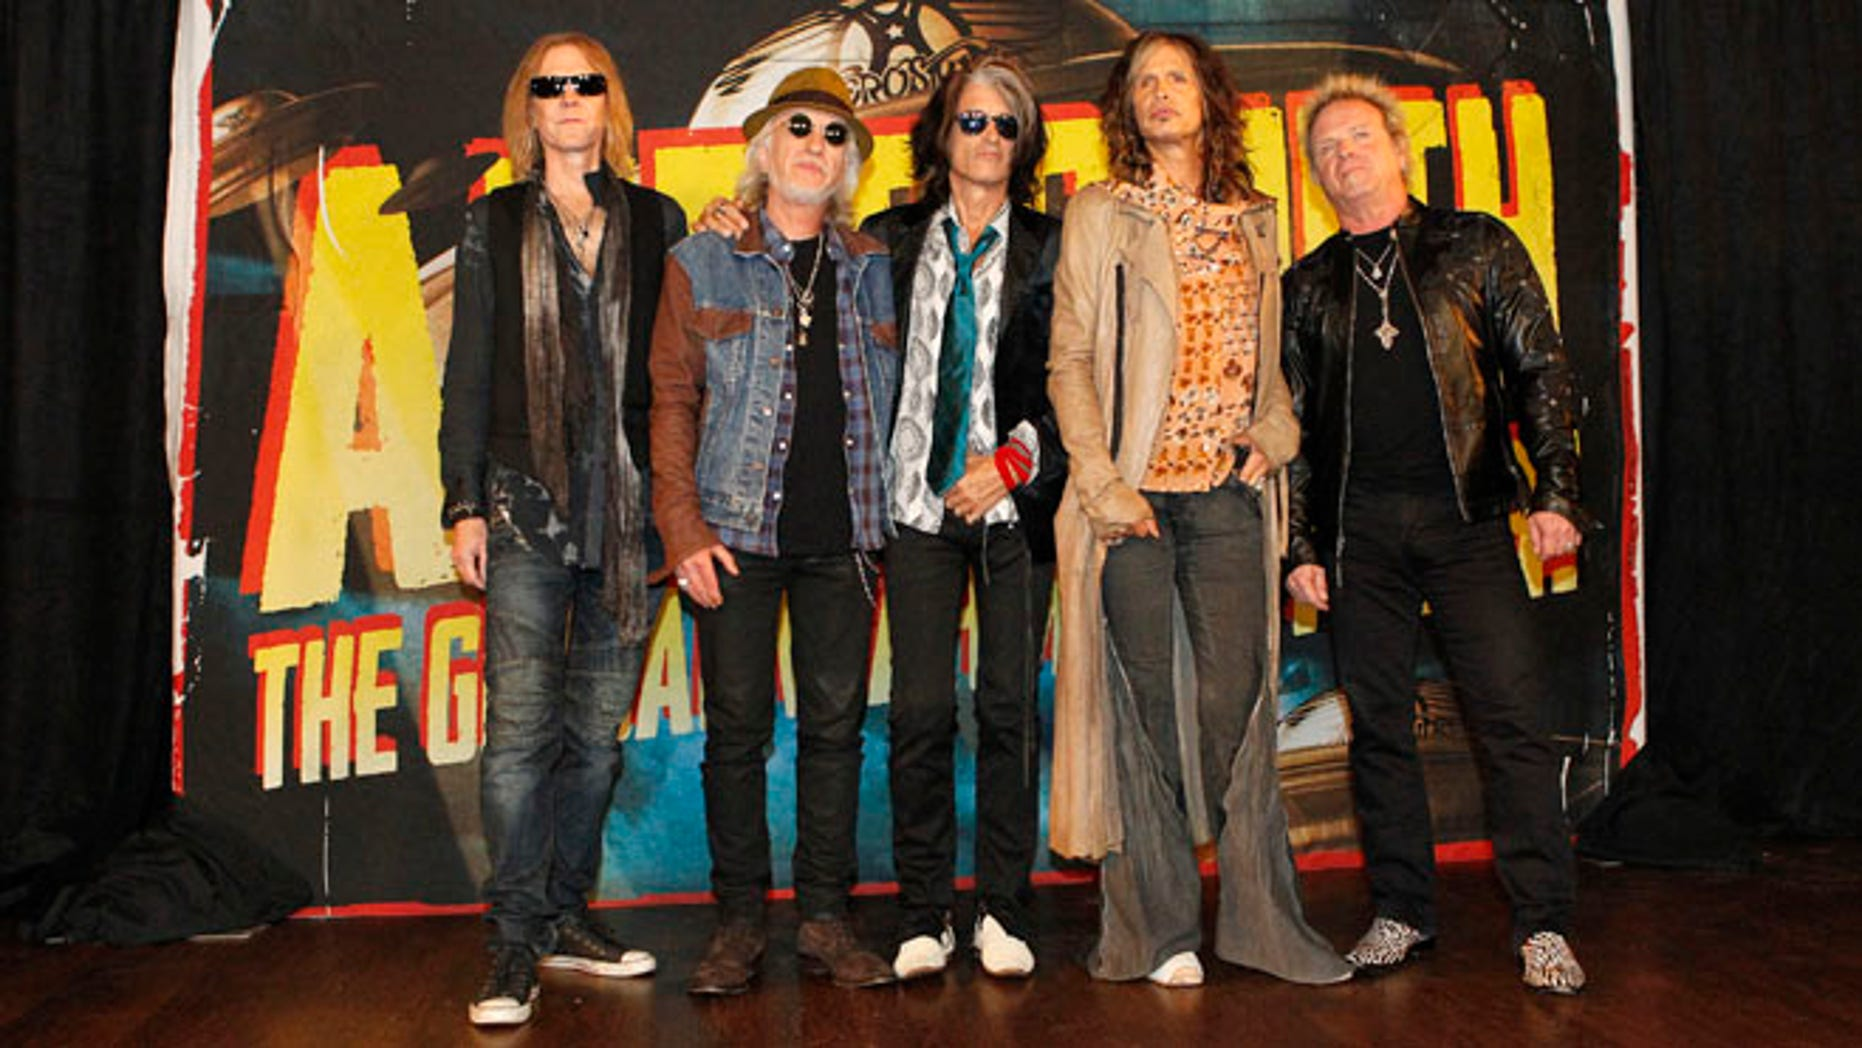 """September 12, 2012. Rock band Aerosmith (L-R) Tom Hamilton, Brad Whitford, Joe Perry, Steven Tyler and Joey Kramer pose while promoting their upcoming album """"Music from Another Dimension!"""" in West Hollywood."""